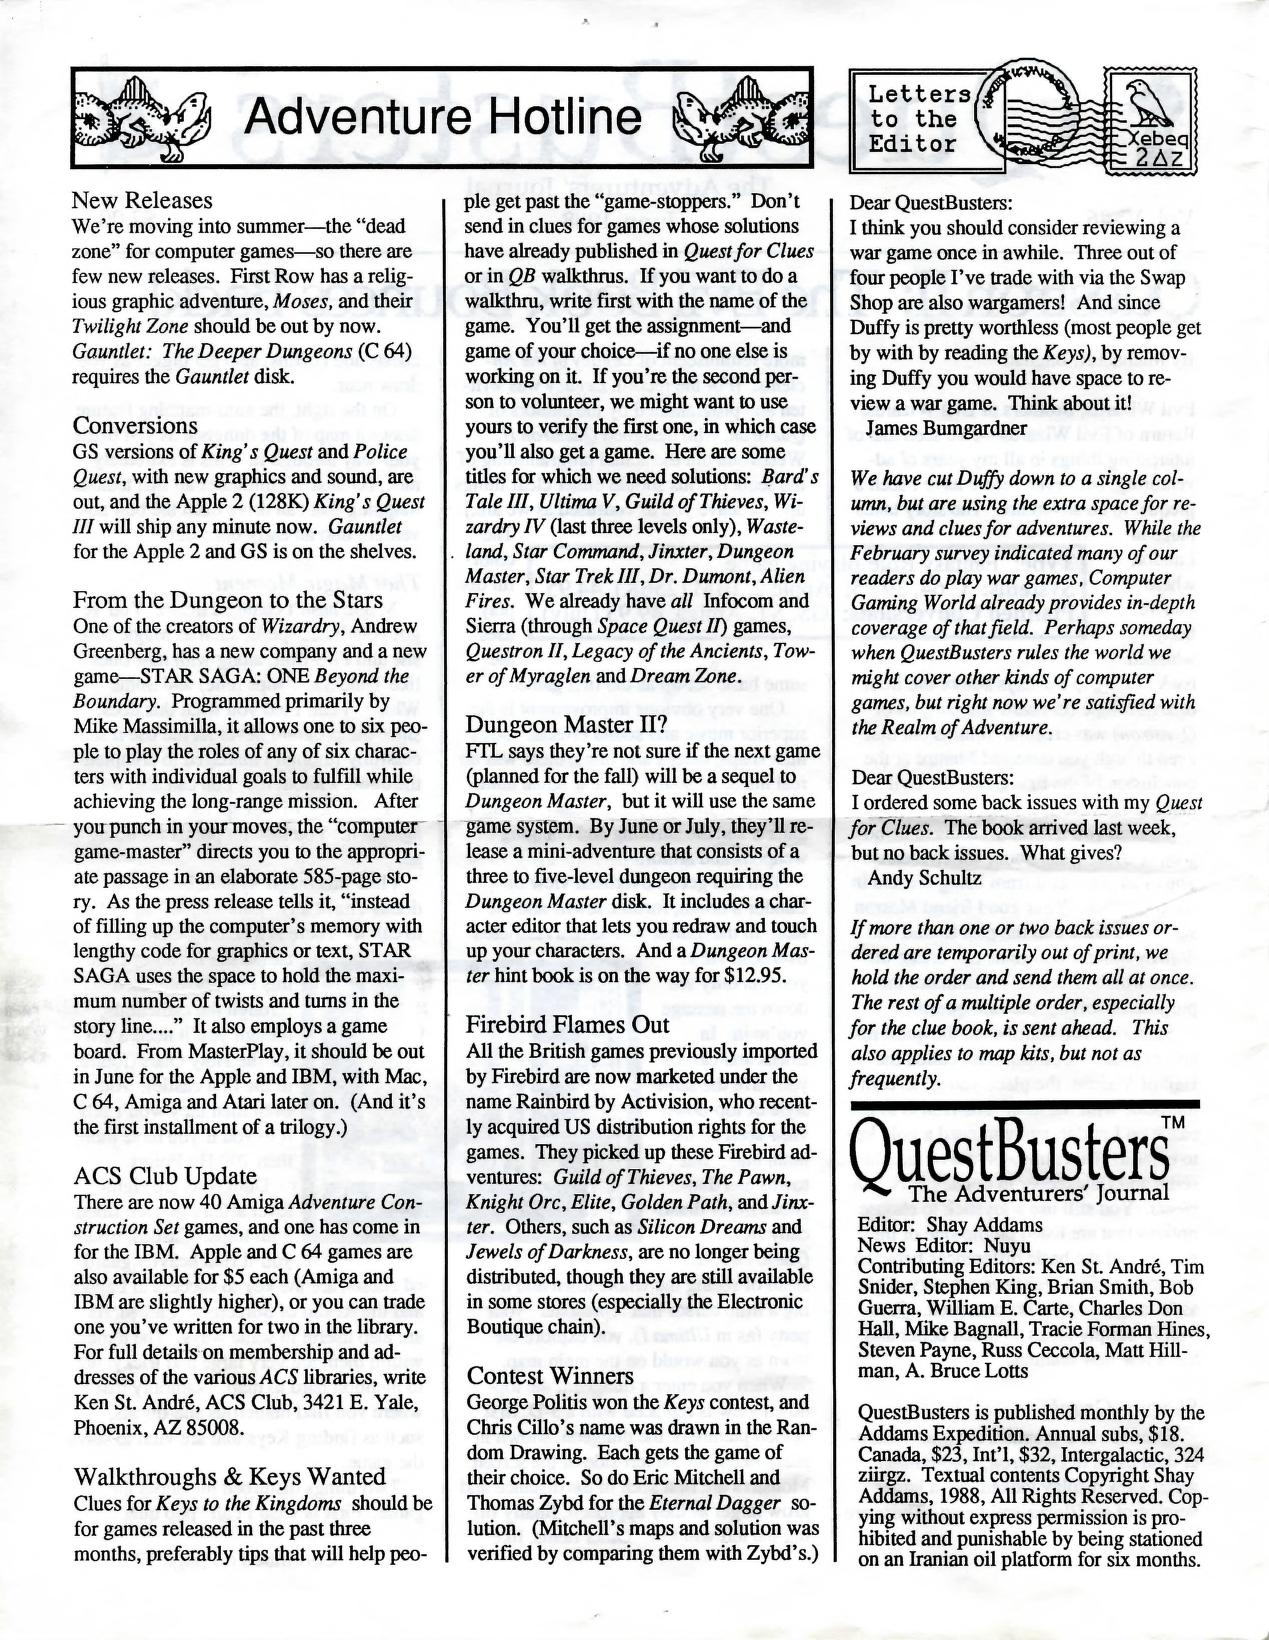 Dungeon Master News published in American magazine 'QuestBusters', Vol 5 No 6 June 1988, Page 2